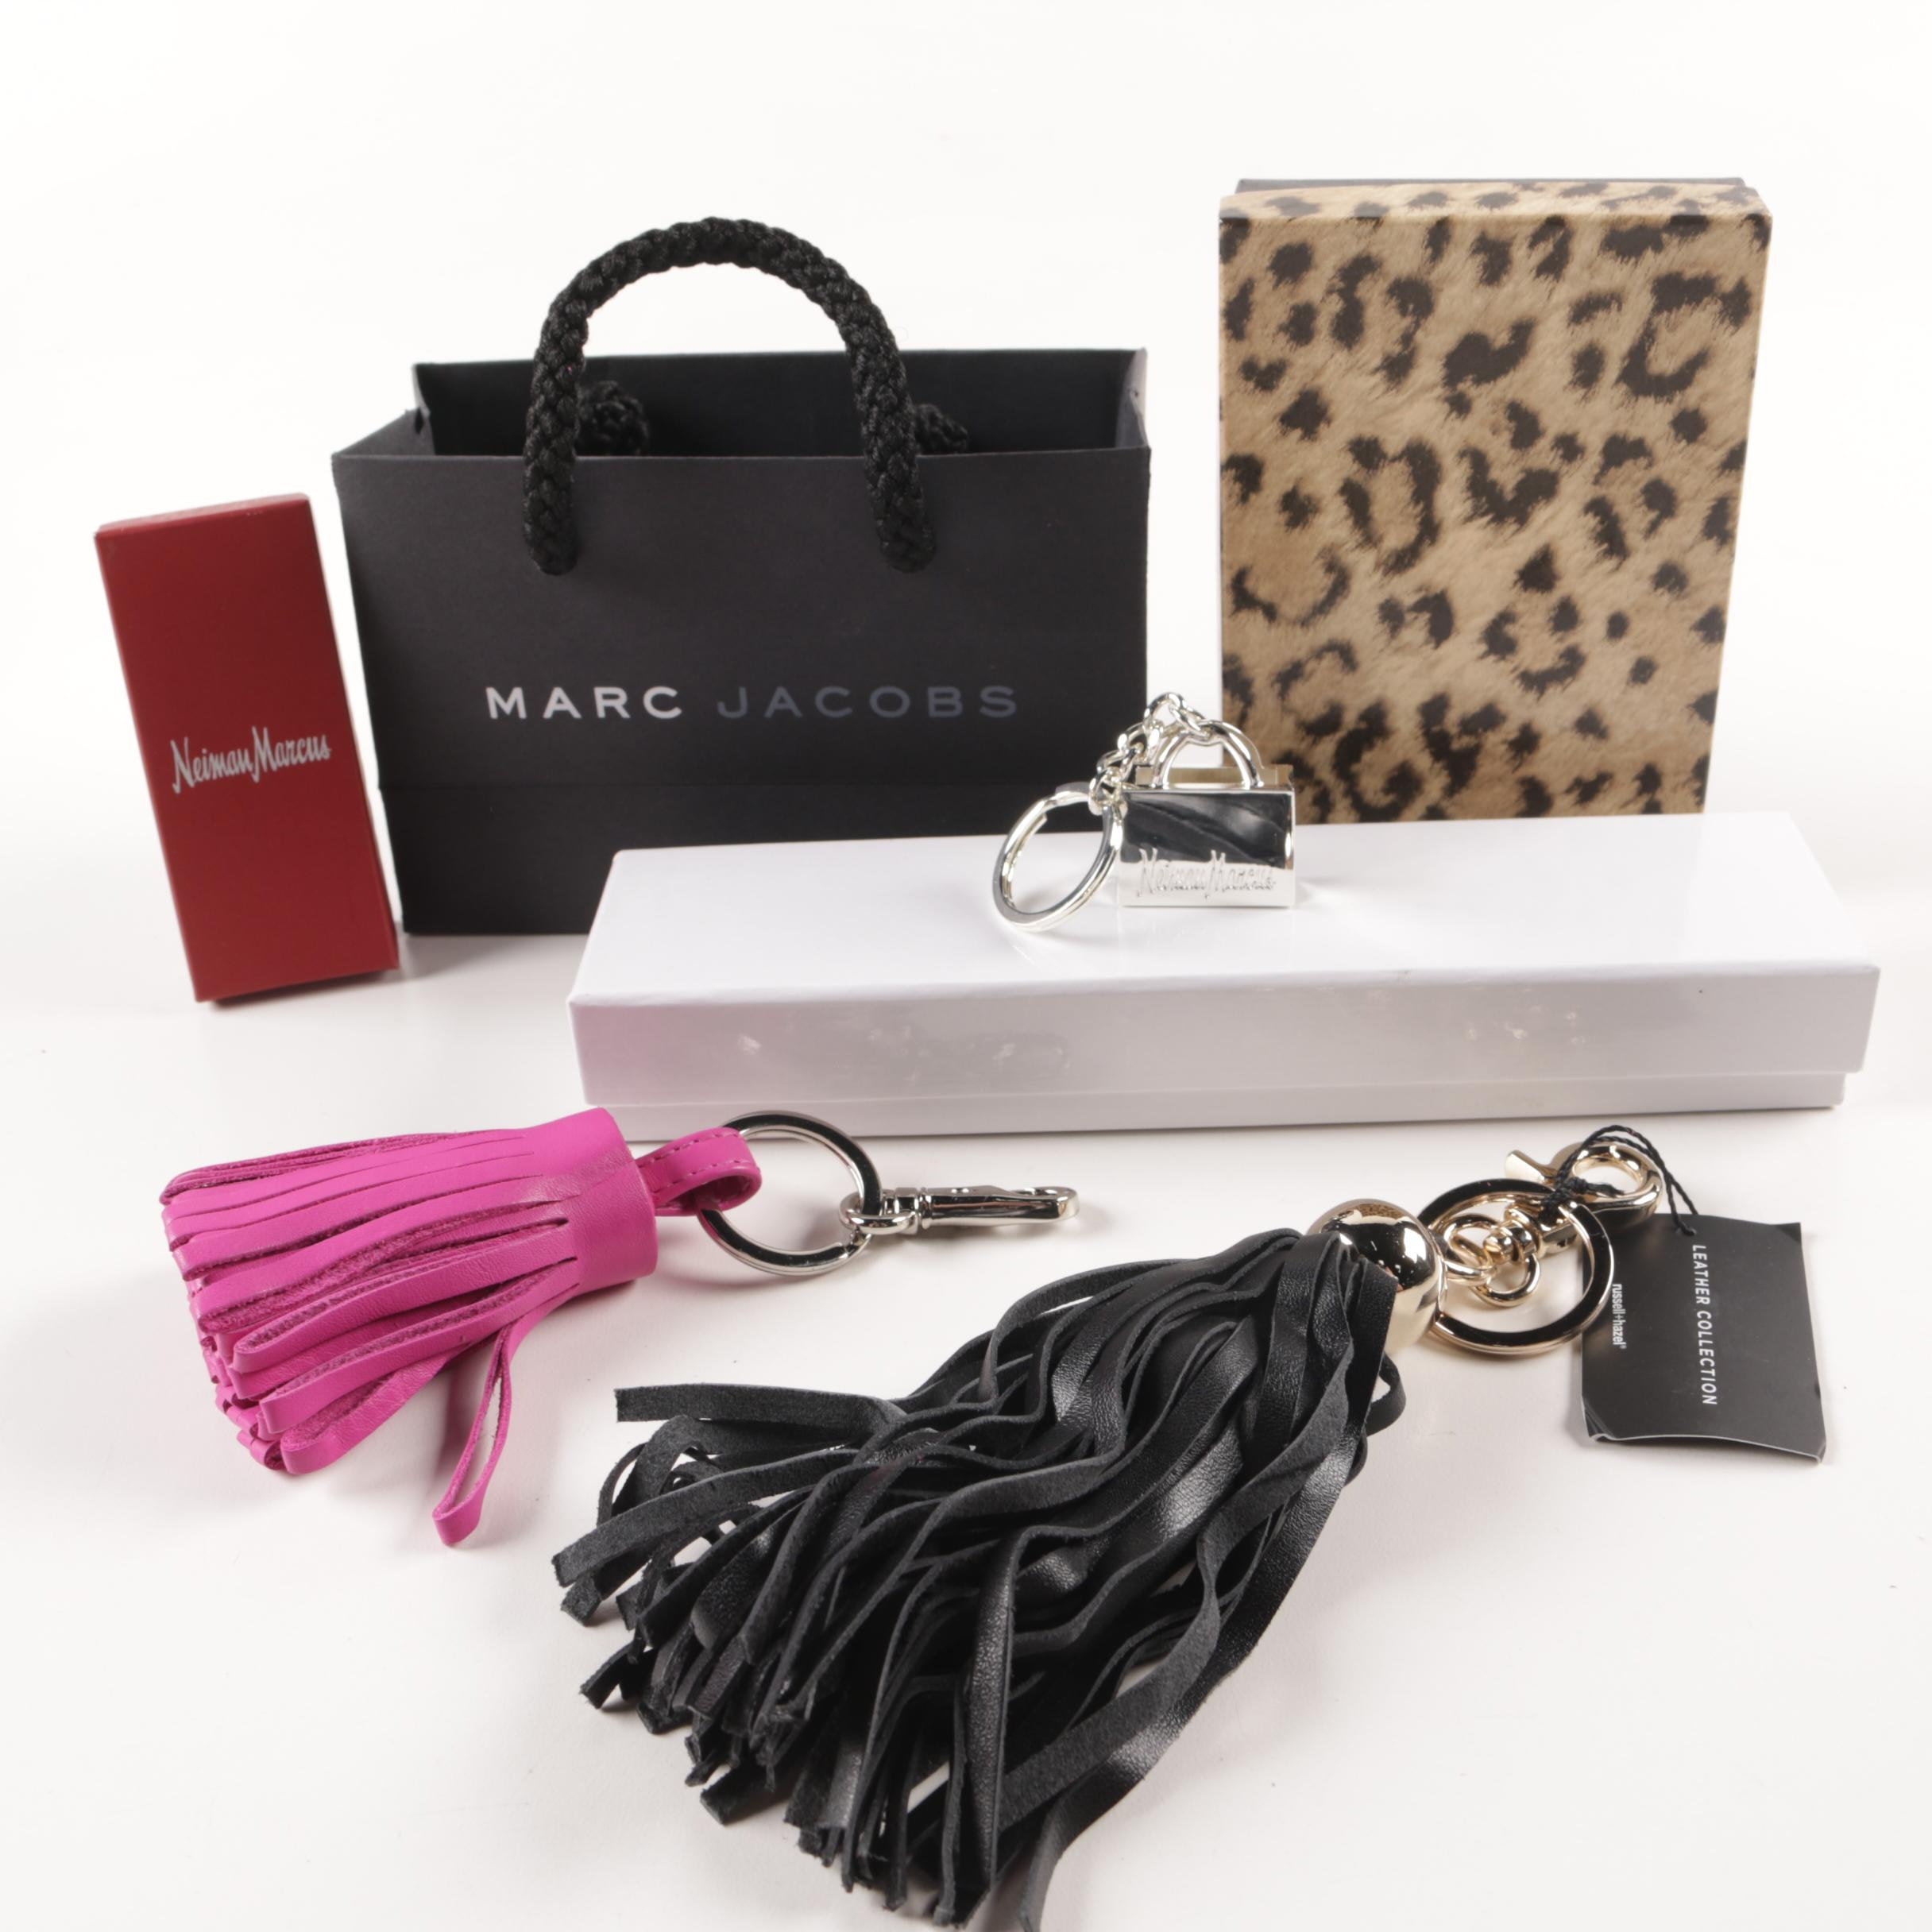 Marc Jacobs and Neiman Marcus Tassel Key Chains